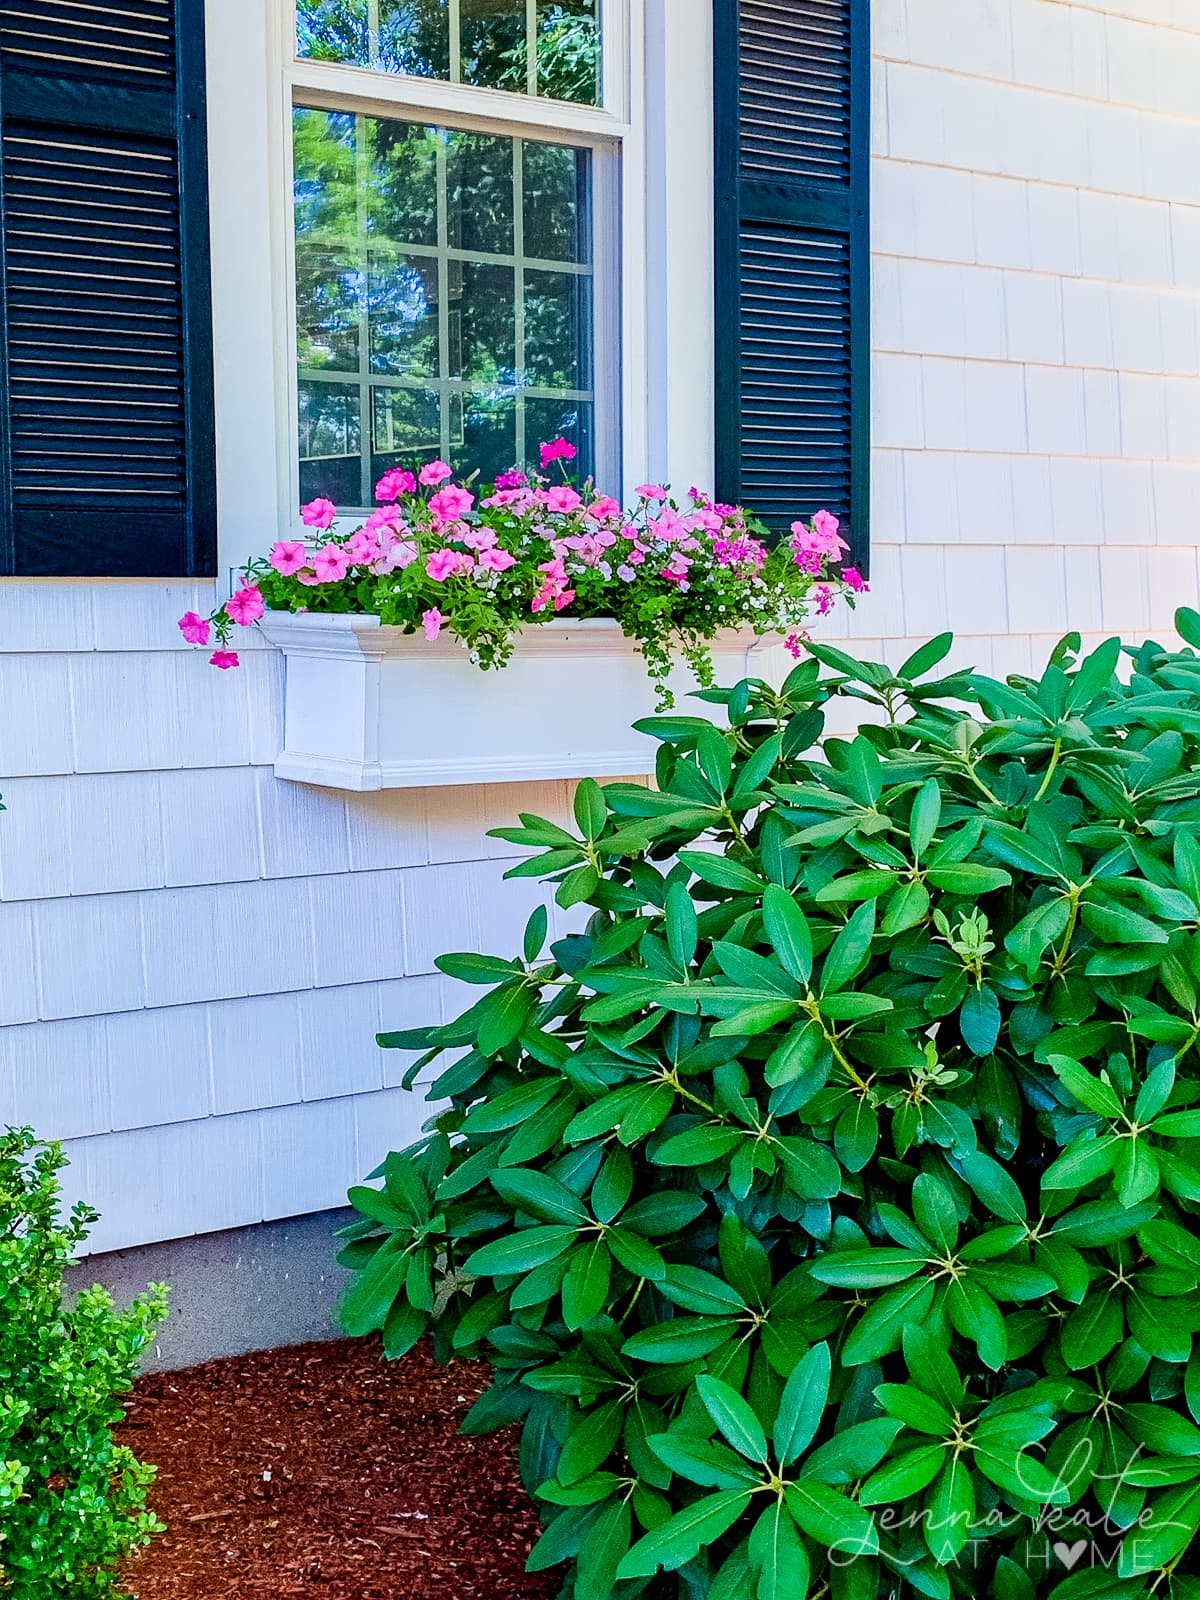 Pink flowers in a summer window box on the front of a white house